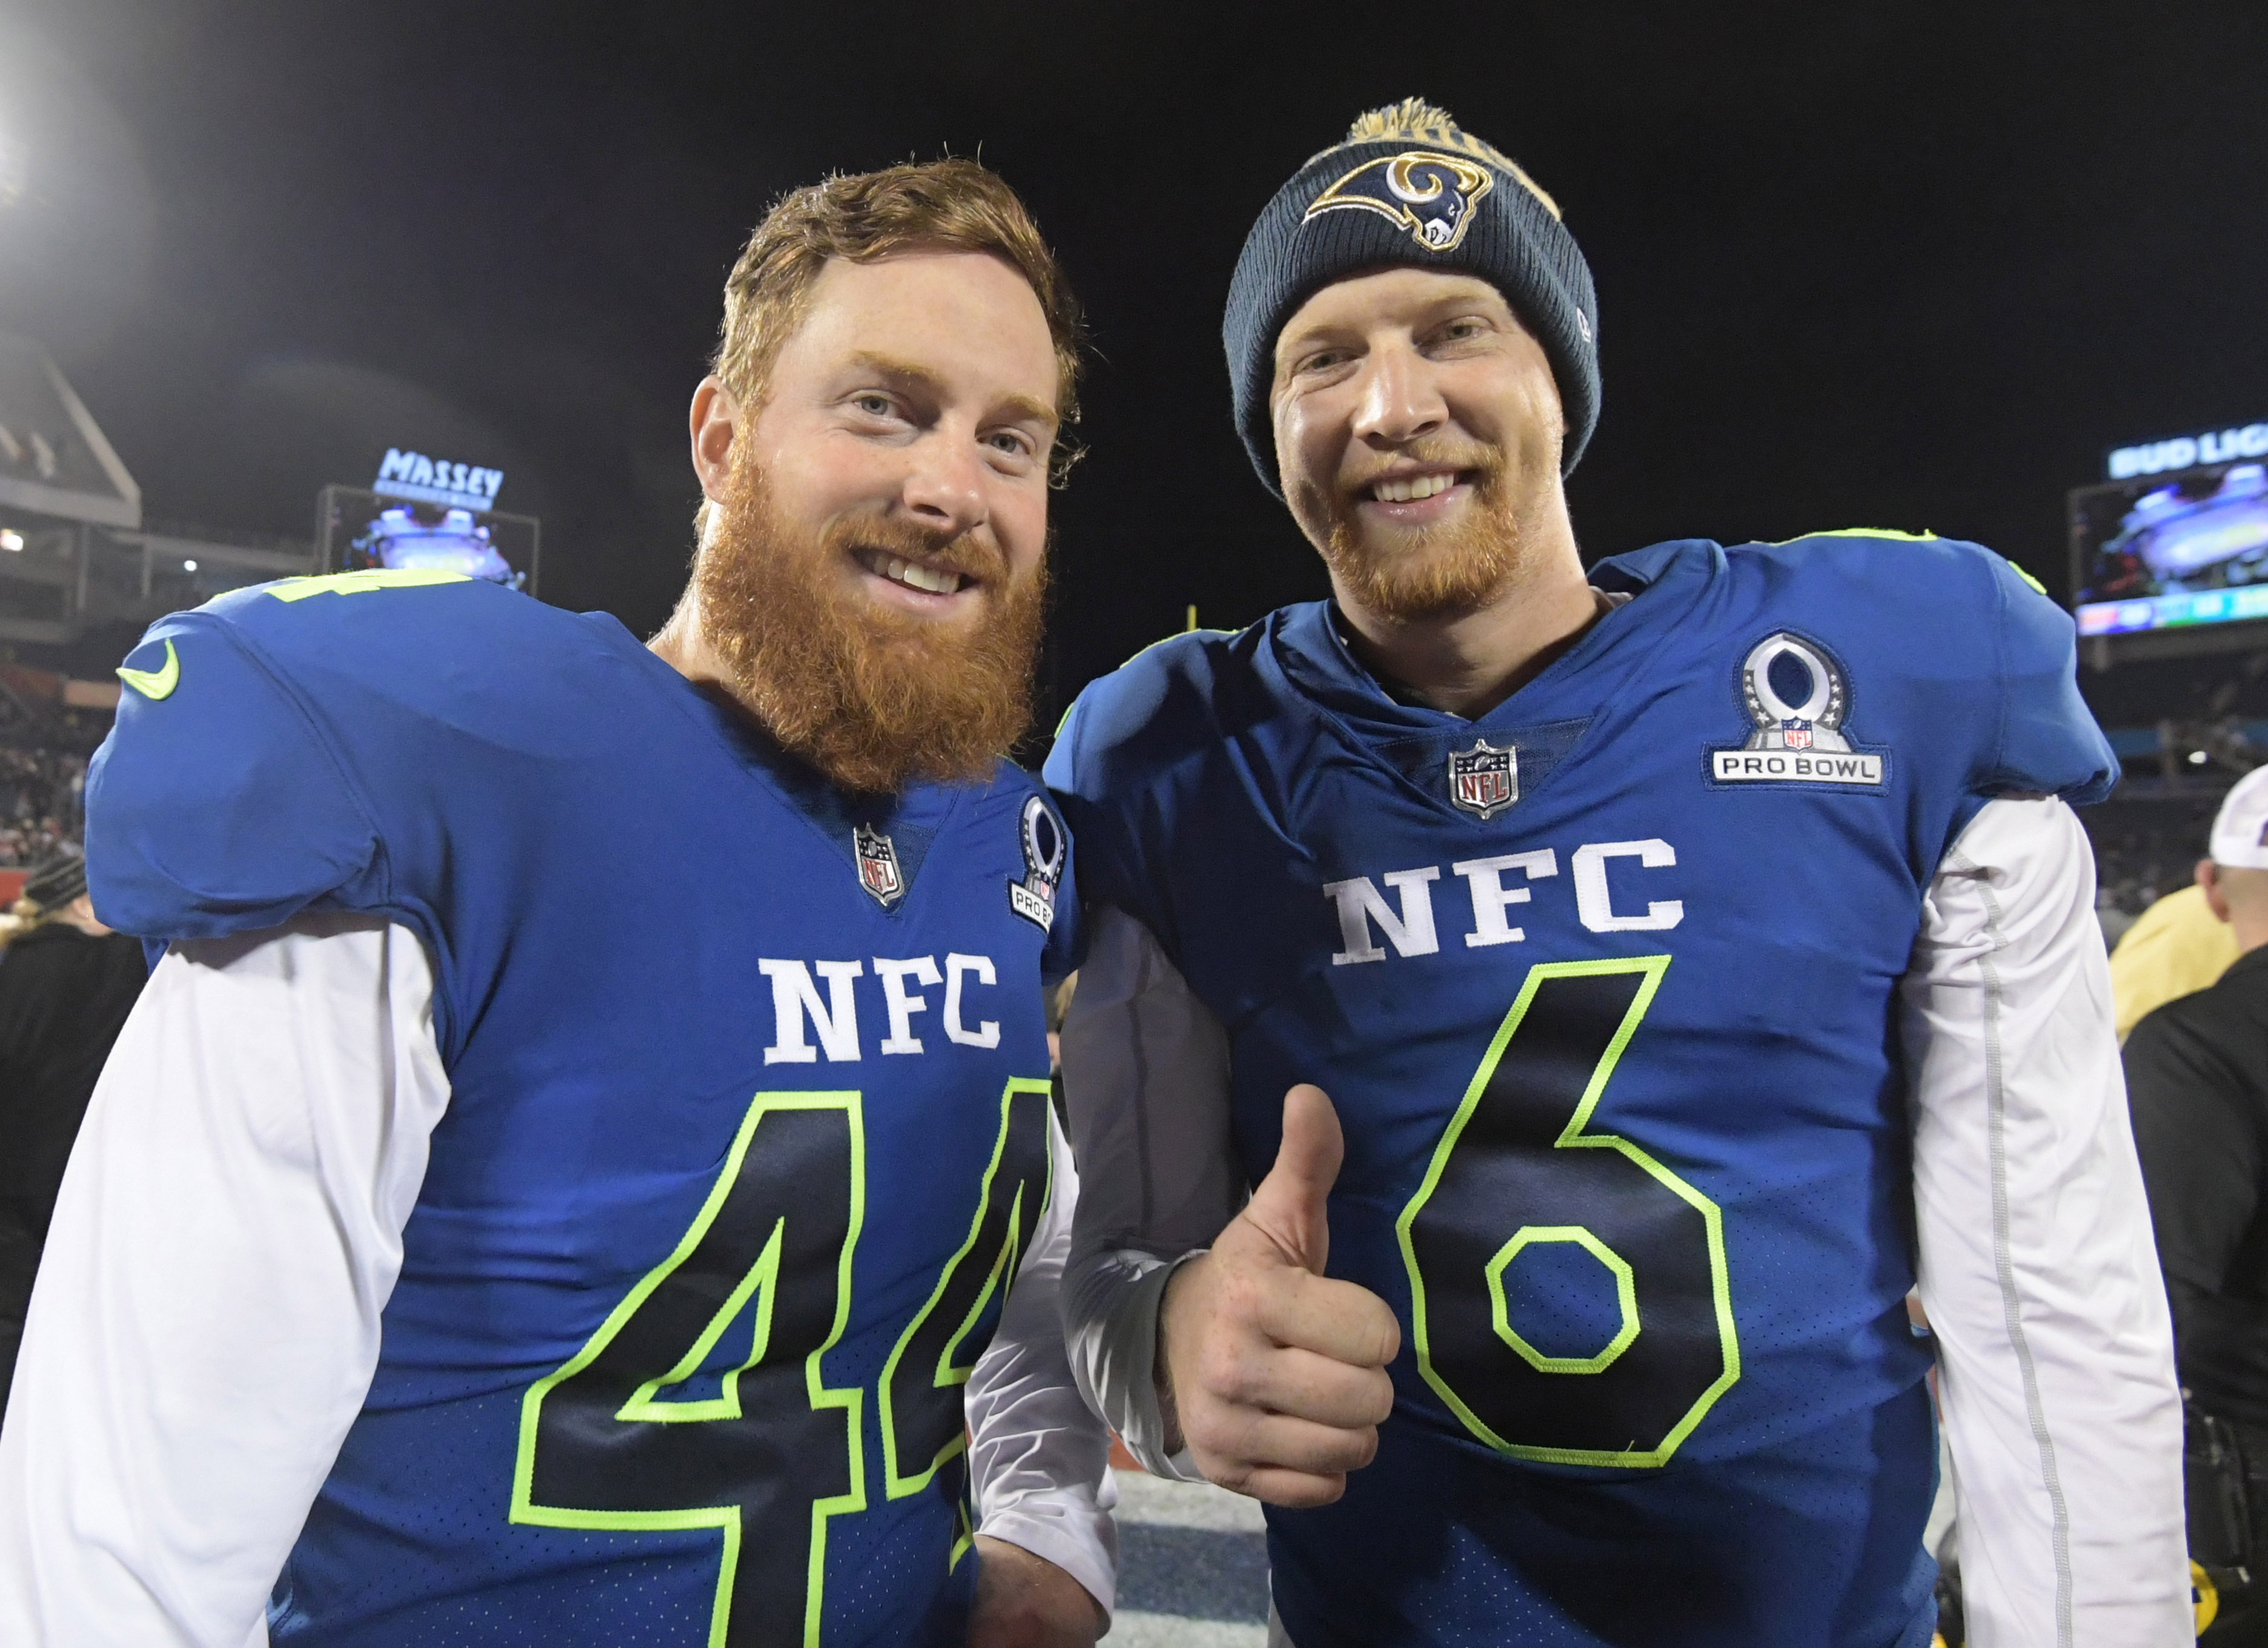 Rams' Johnny Hekker Shares Hilarious Story About Being Mistaken For Andy Dalton